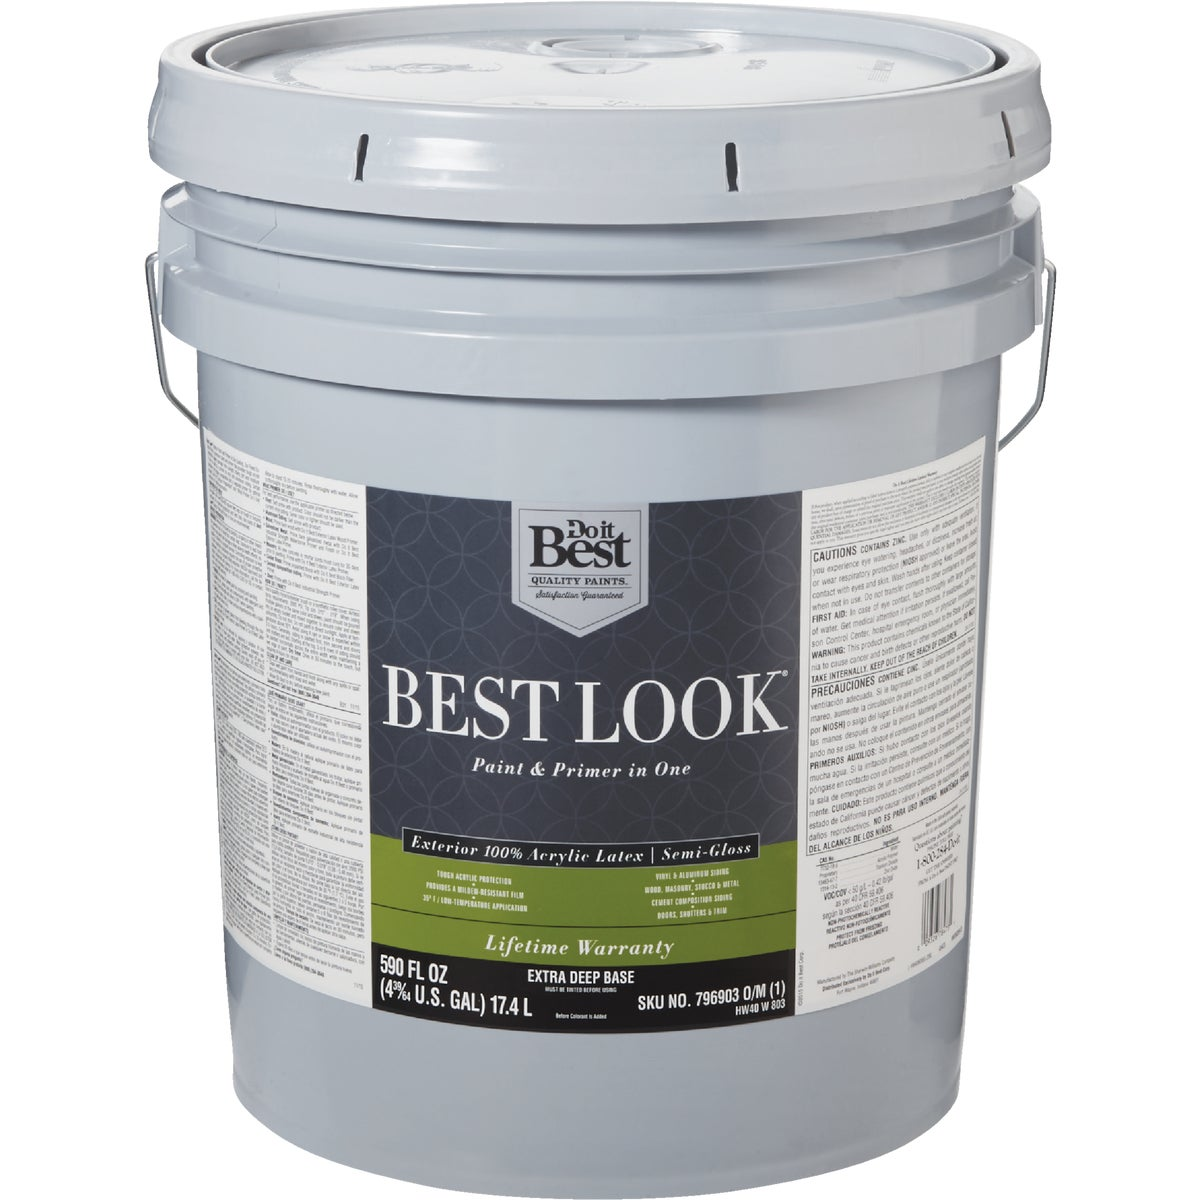 EXT S/G EX DEEP BS PAINT - HW40W0803-20 by Do it Best